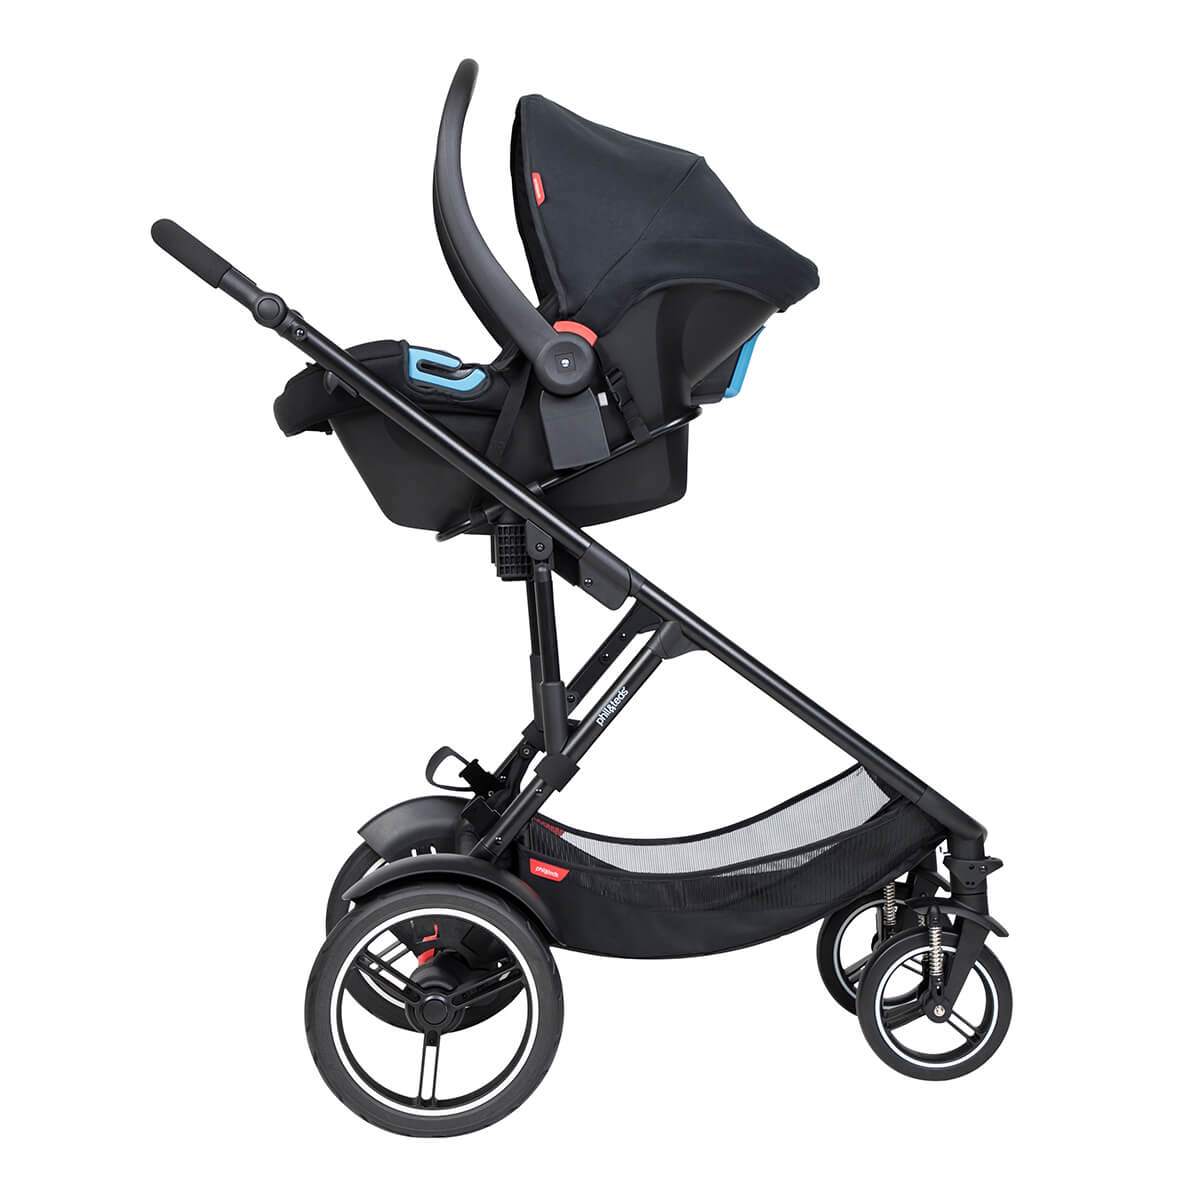 https://cdn.accentuate.io/4509910794317/19466203660482/philteds-voyager-buggy-with-travel-system-in-parent-facing-mode-v1626485520008.jpg?1200x1200